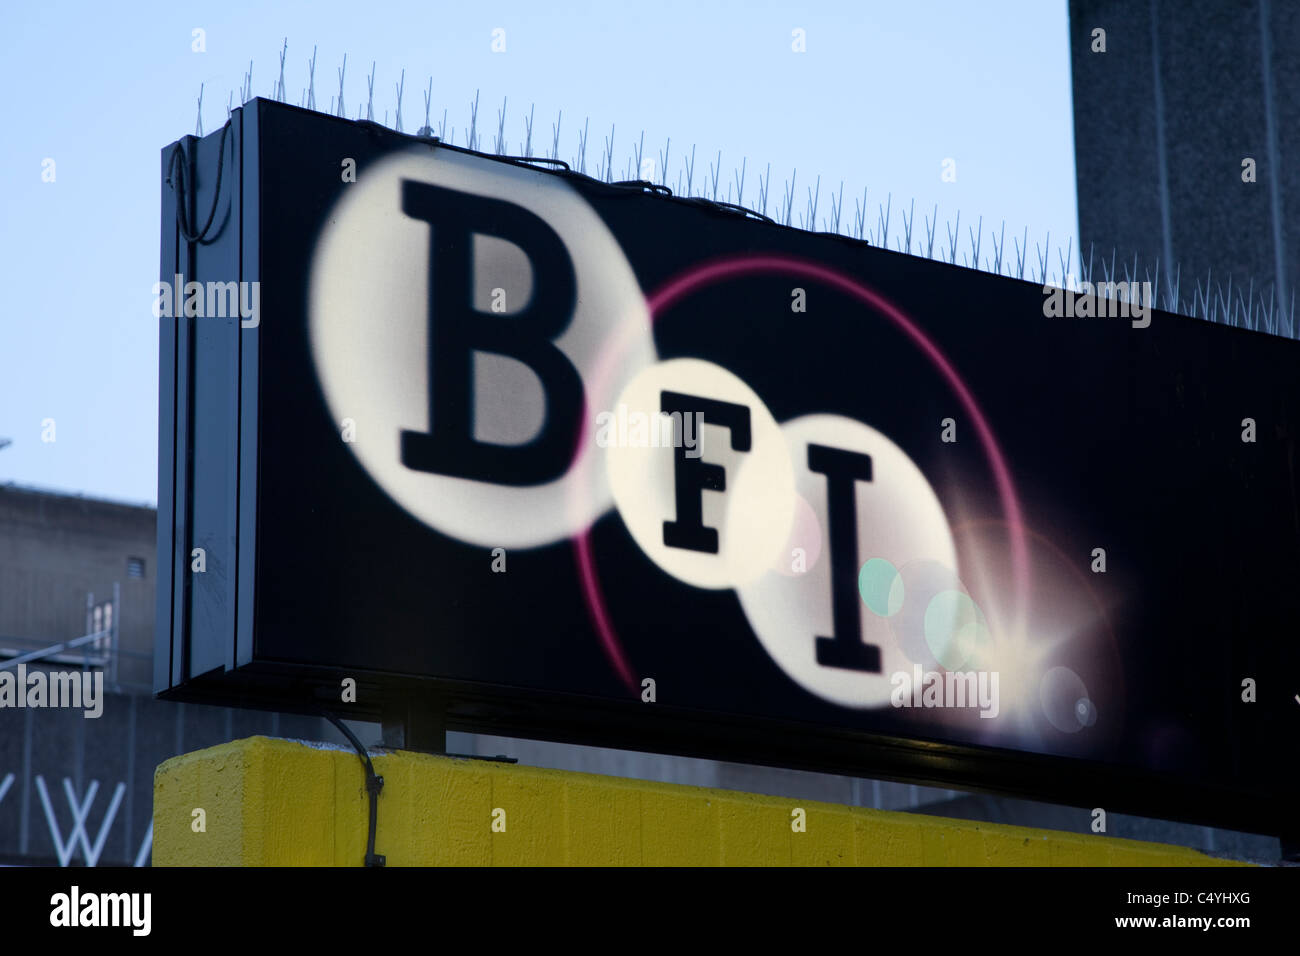 British Film Institute - BFI Entrance on South Bank; London; England; UK; - Stock Image